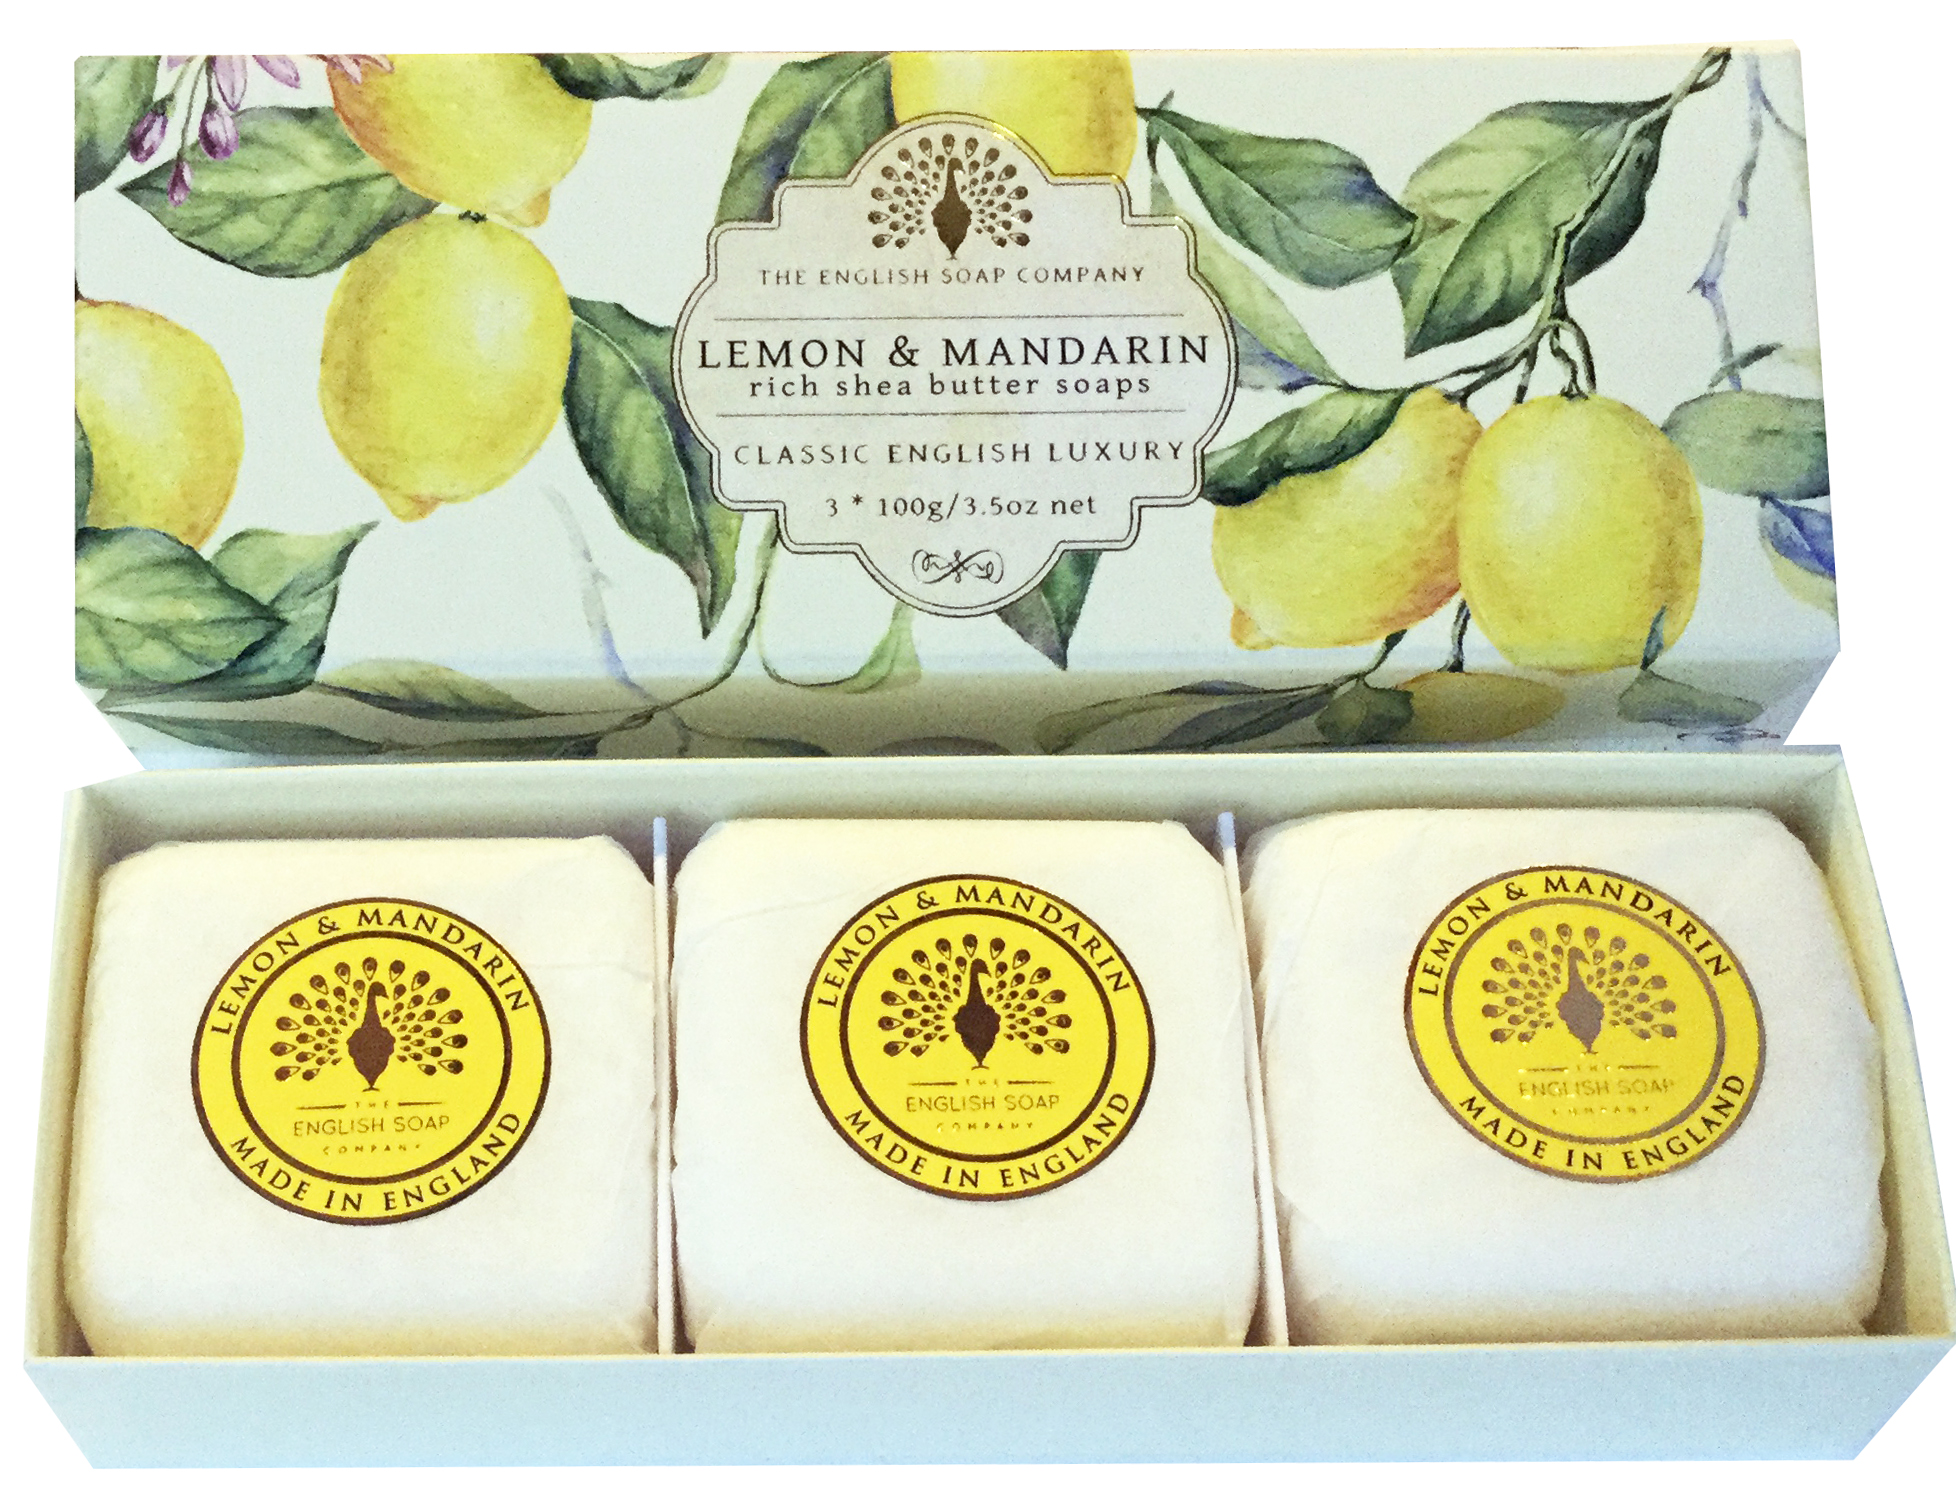 THE ENGLISH SOAP COMPANY Luxury Shea Butter Soap 3 x 100g Hand-Seife